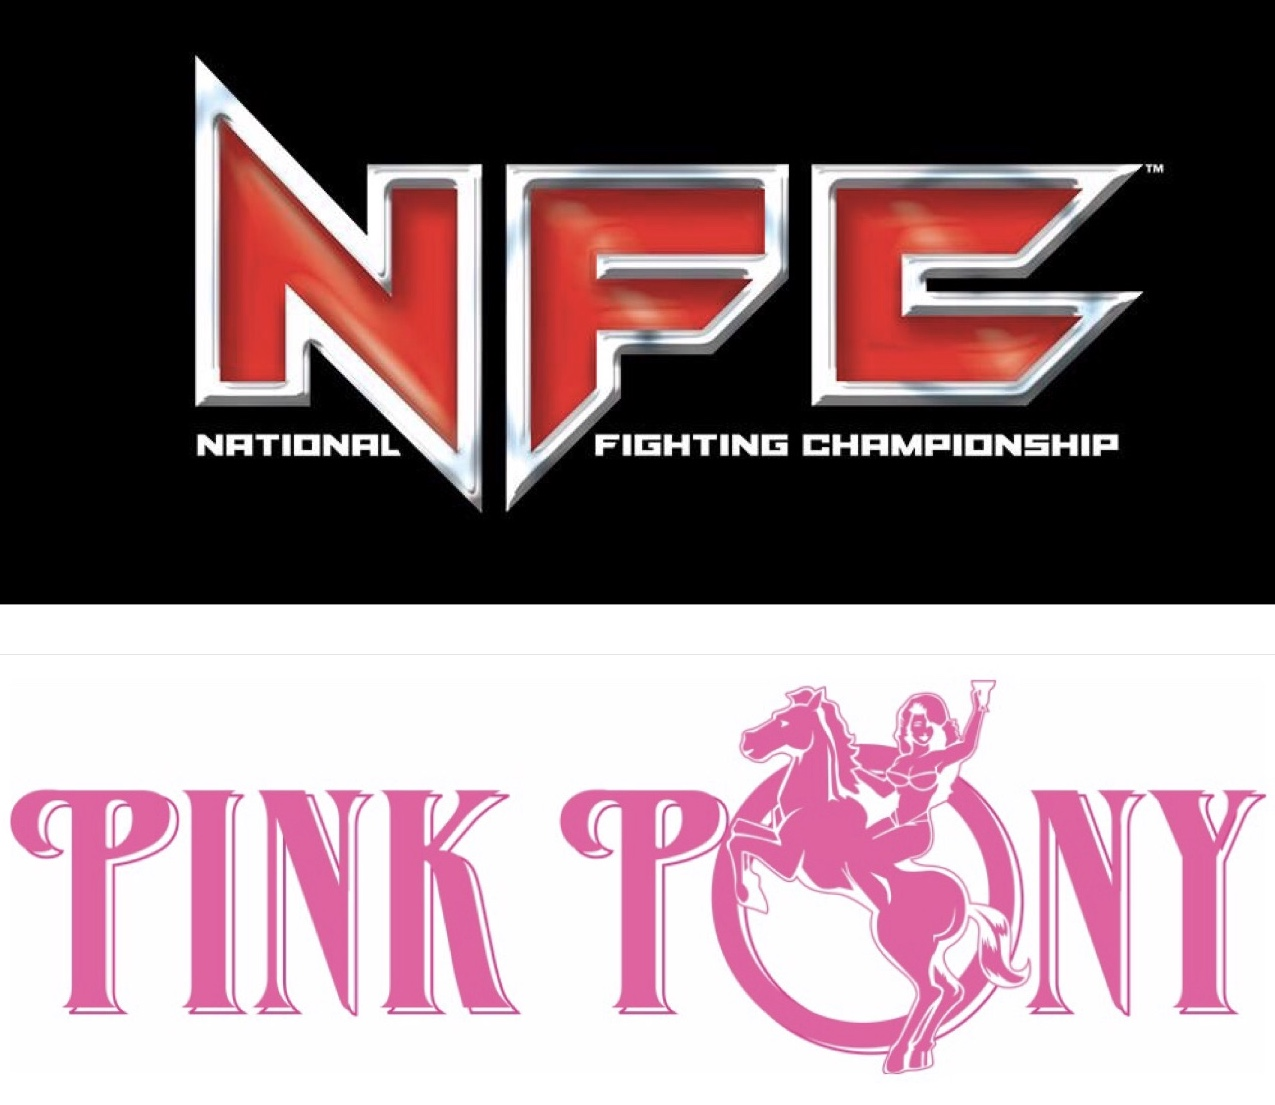 NFC #121 SATURDAY, OCTOBER 12 - LIVE AT THE PINK PONY AT 4 PM!